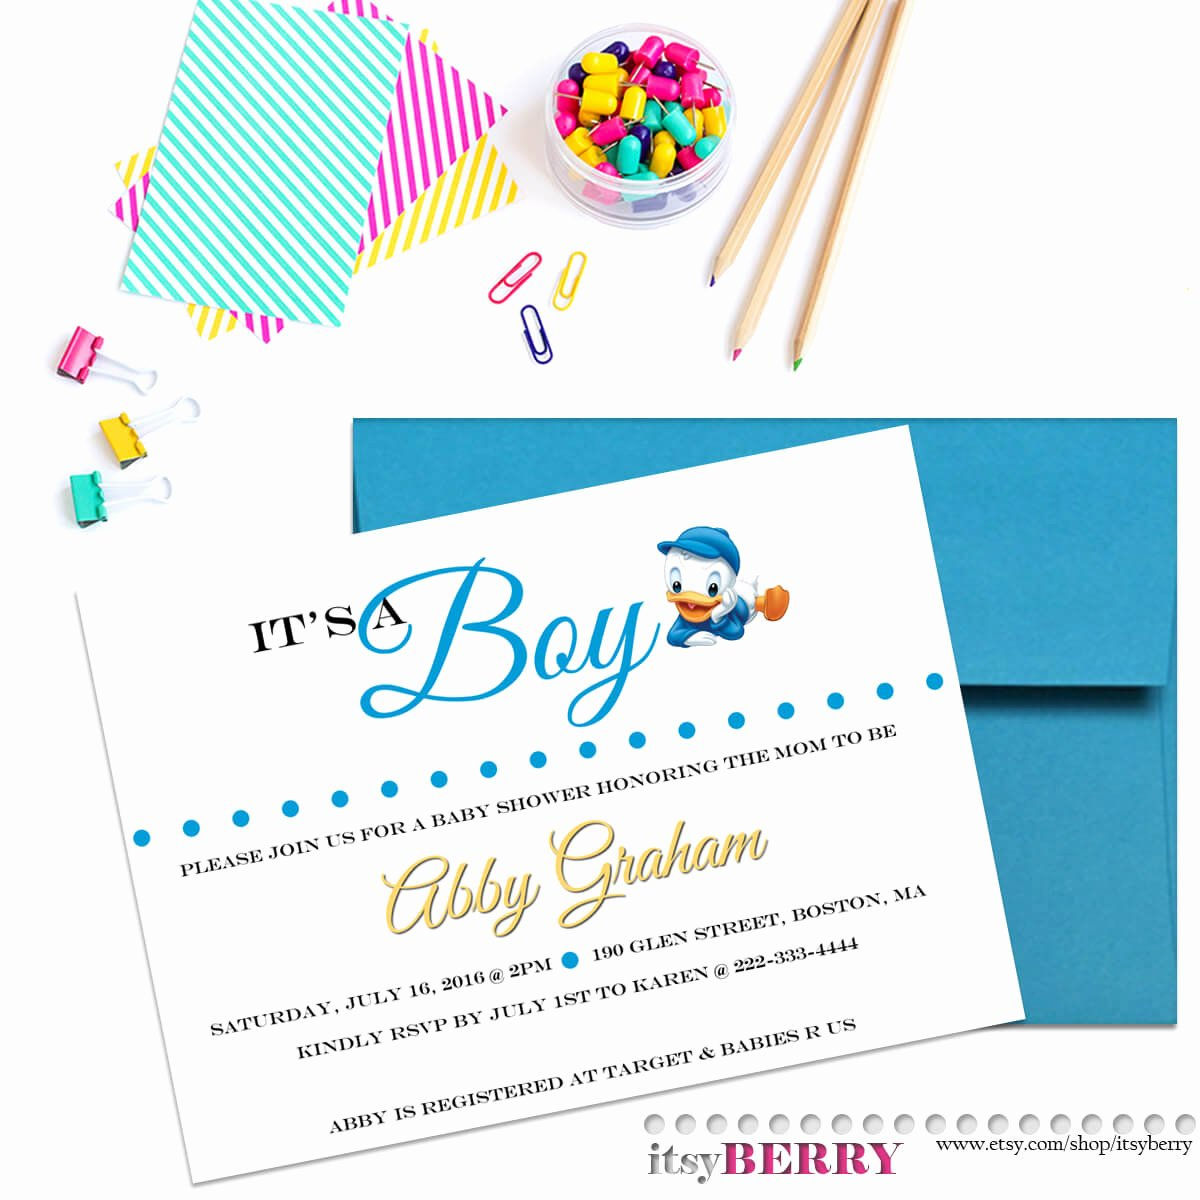 Disney Baby Shower Invitations Inspirational Disney Baby Shower Ideas Baby Ideas